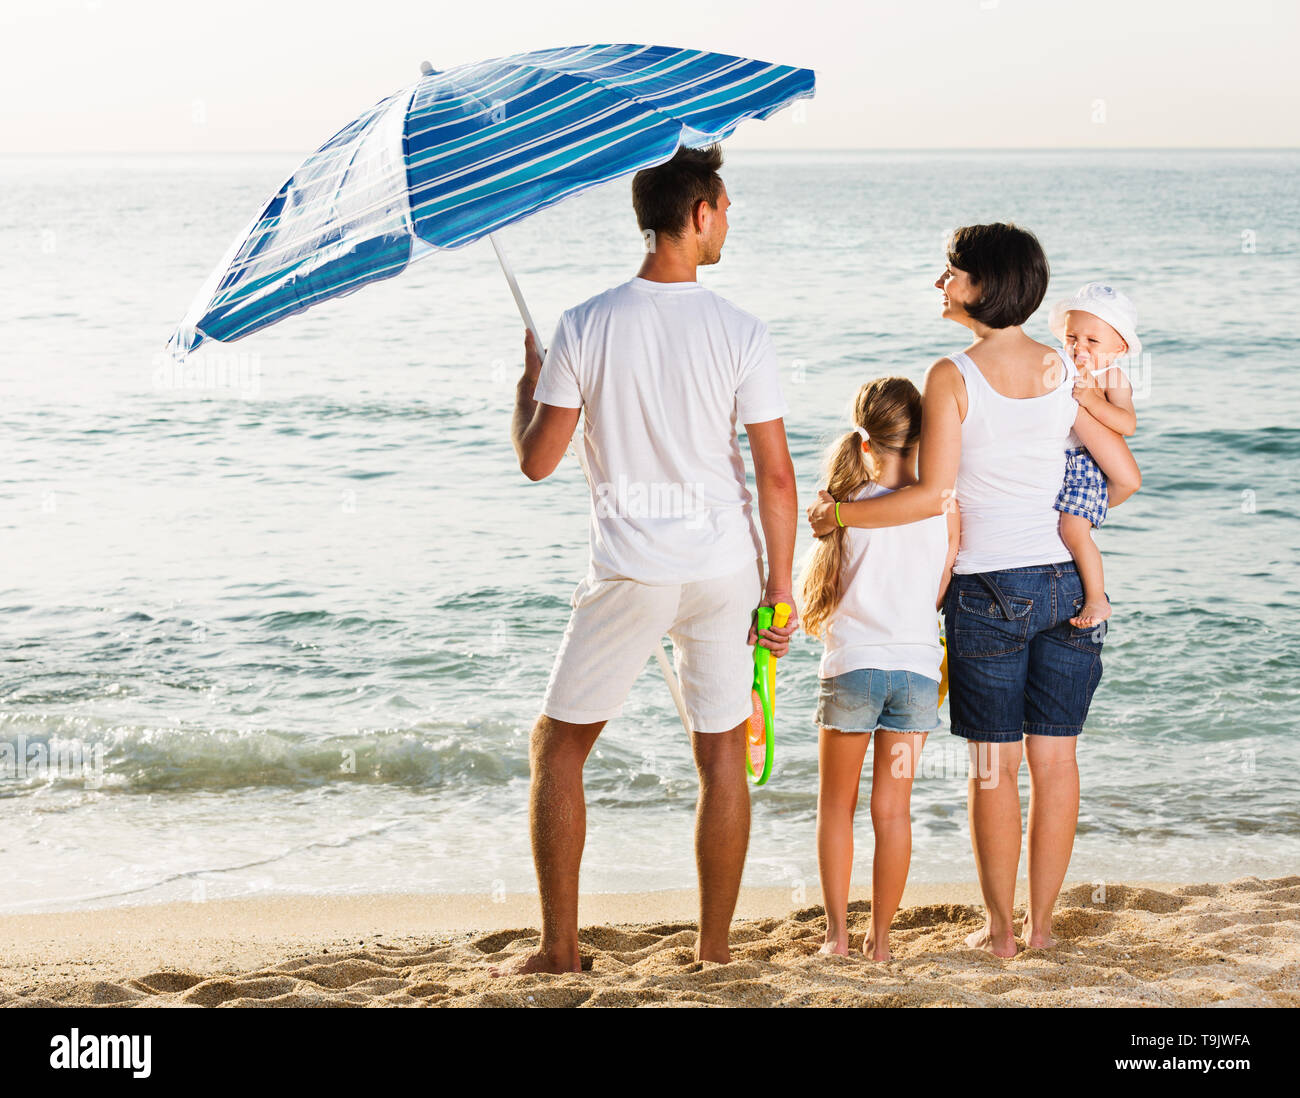 Smiling happy glad man and woman with two children standing with back to camera on sandy beach - Stock Image